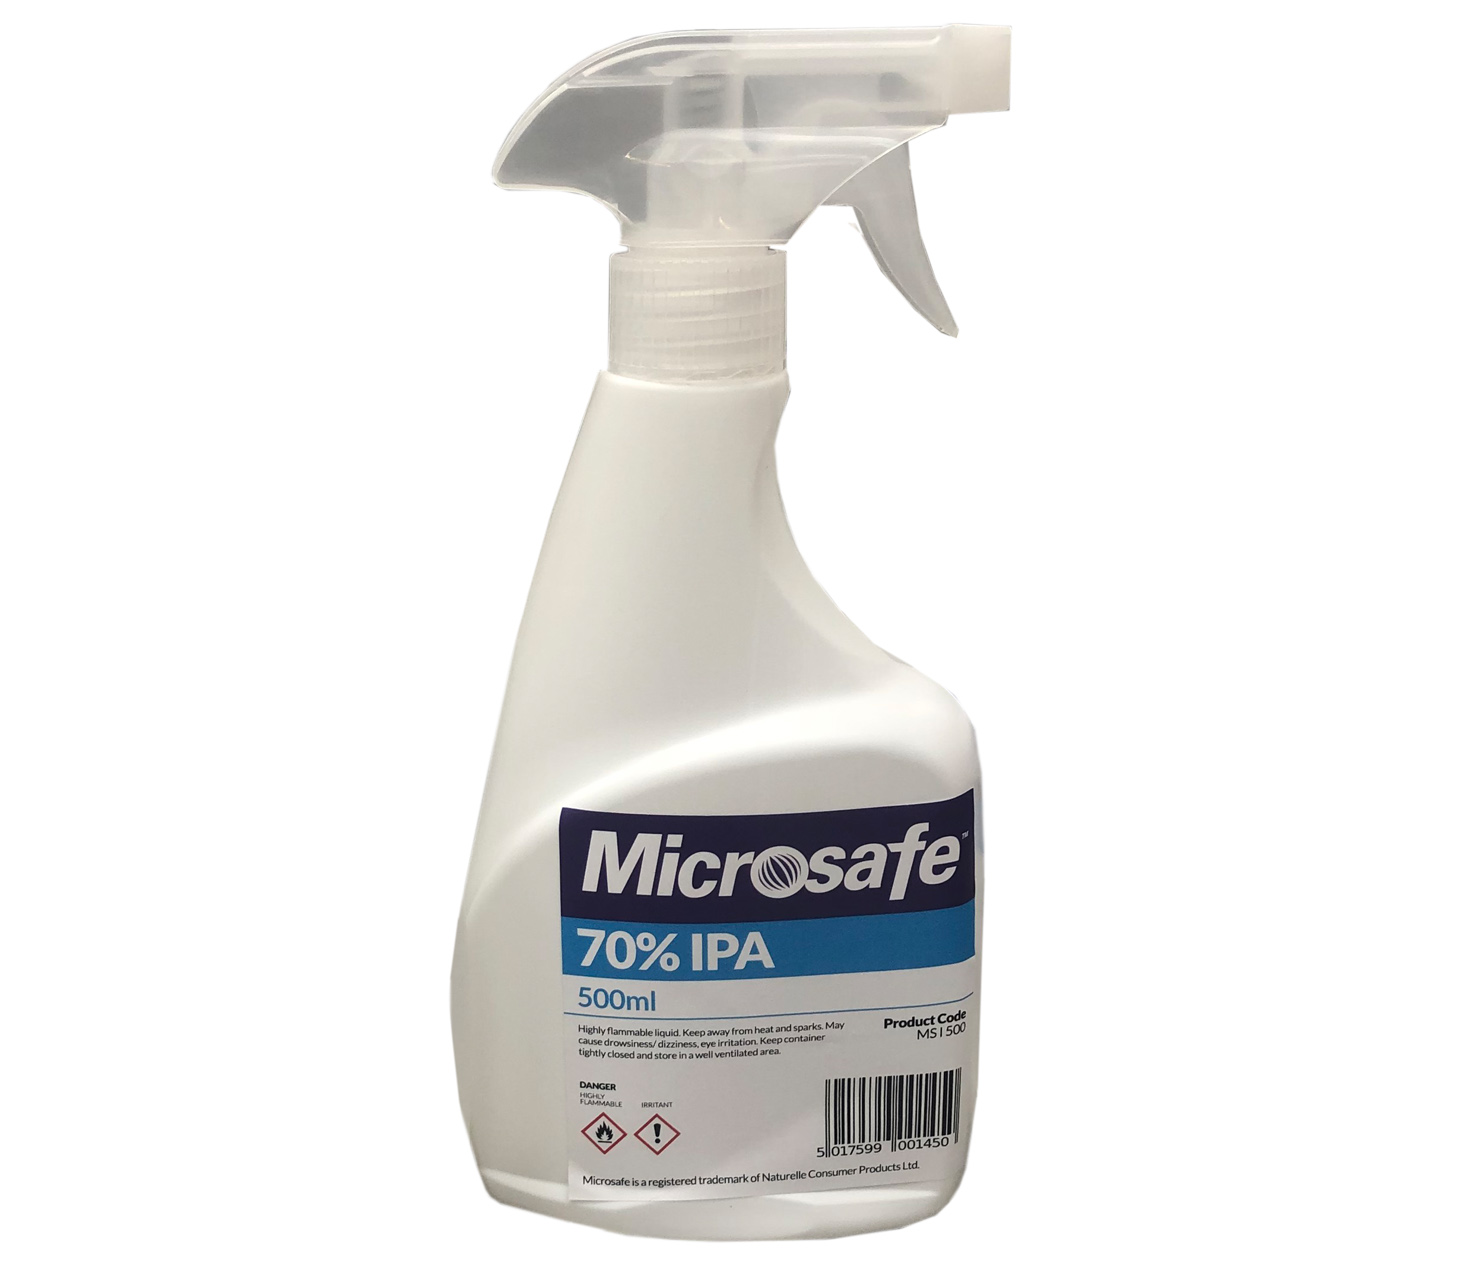 637283626964811837_microsafe_spray_500ml.jpg